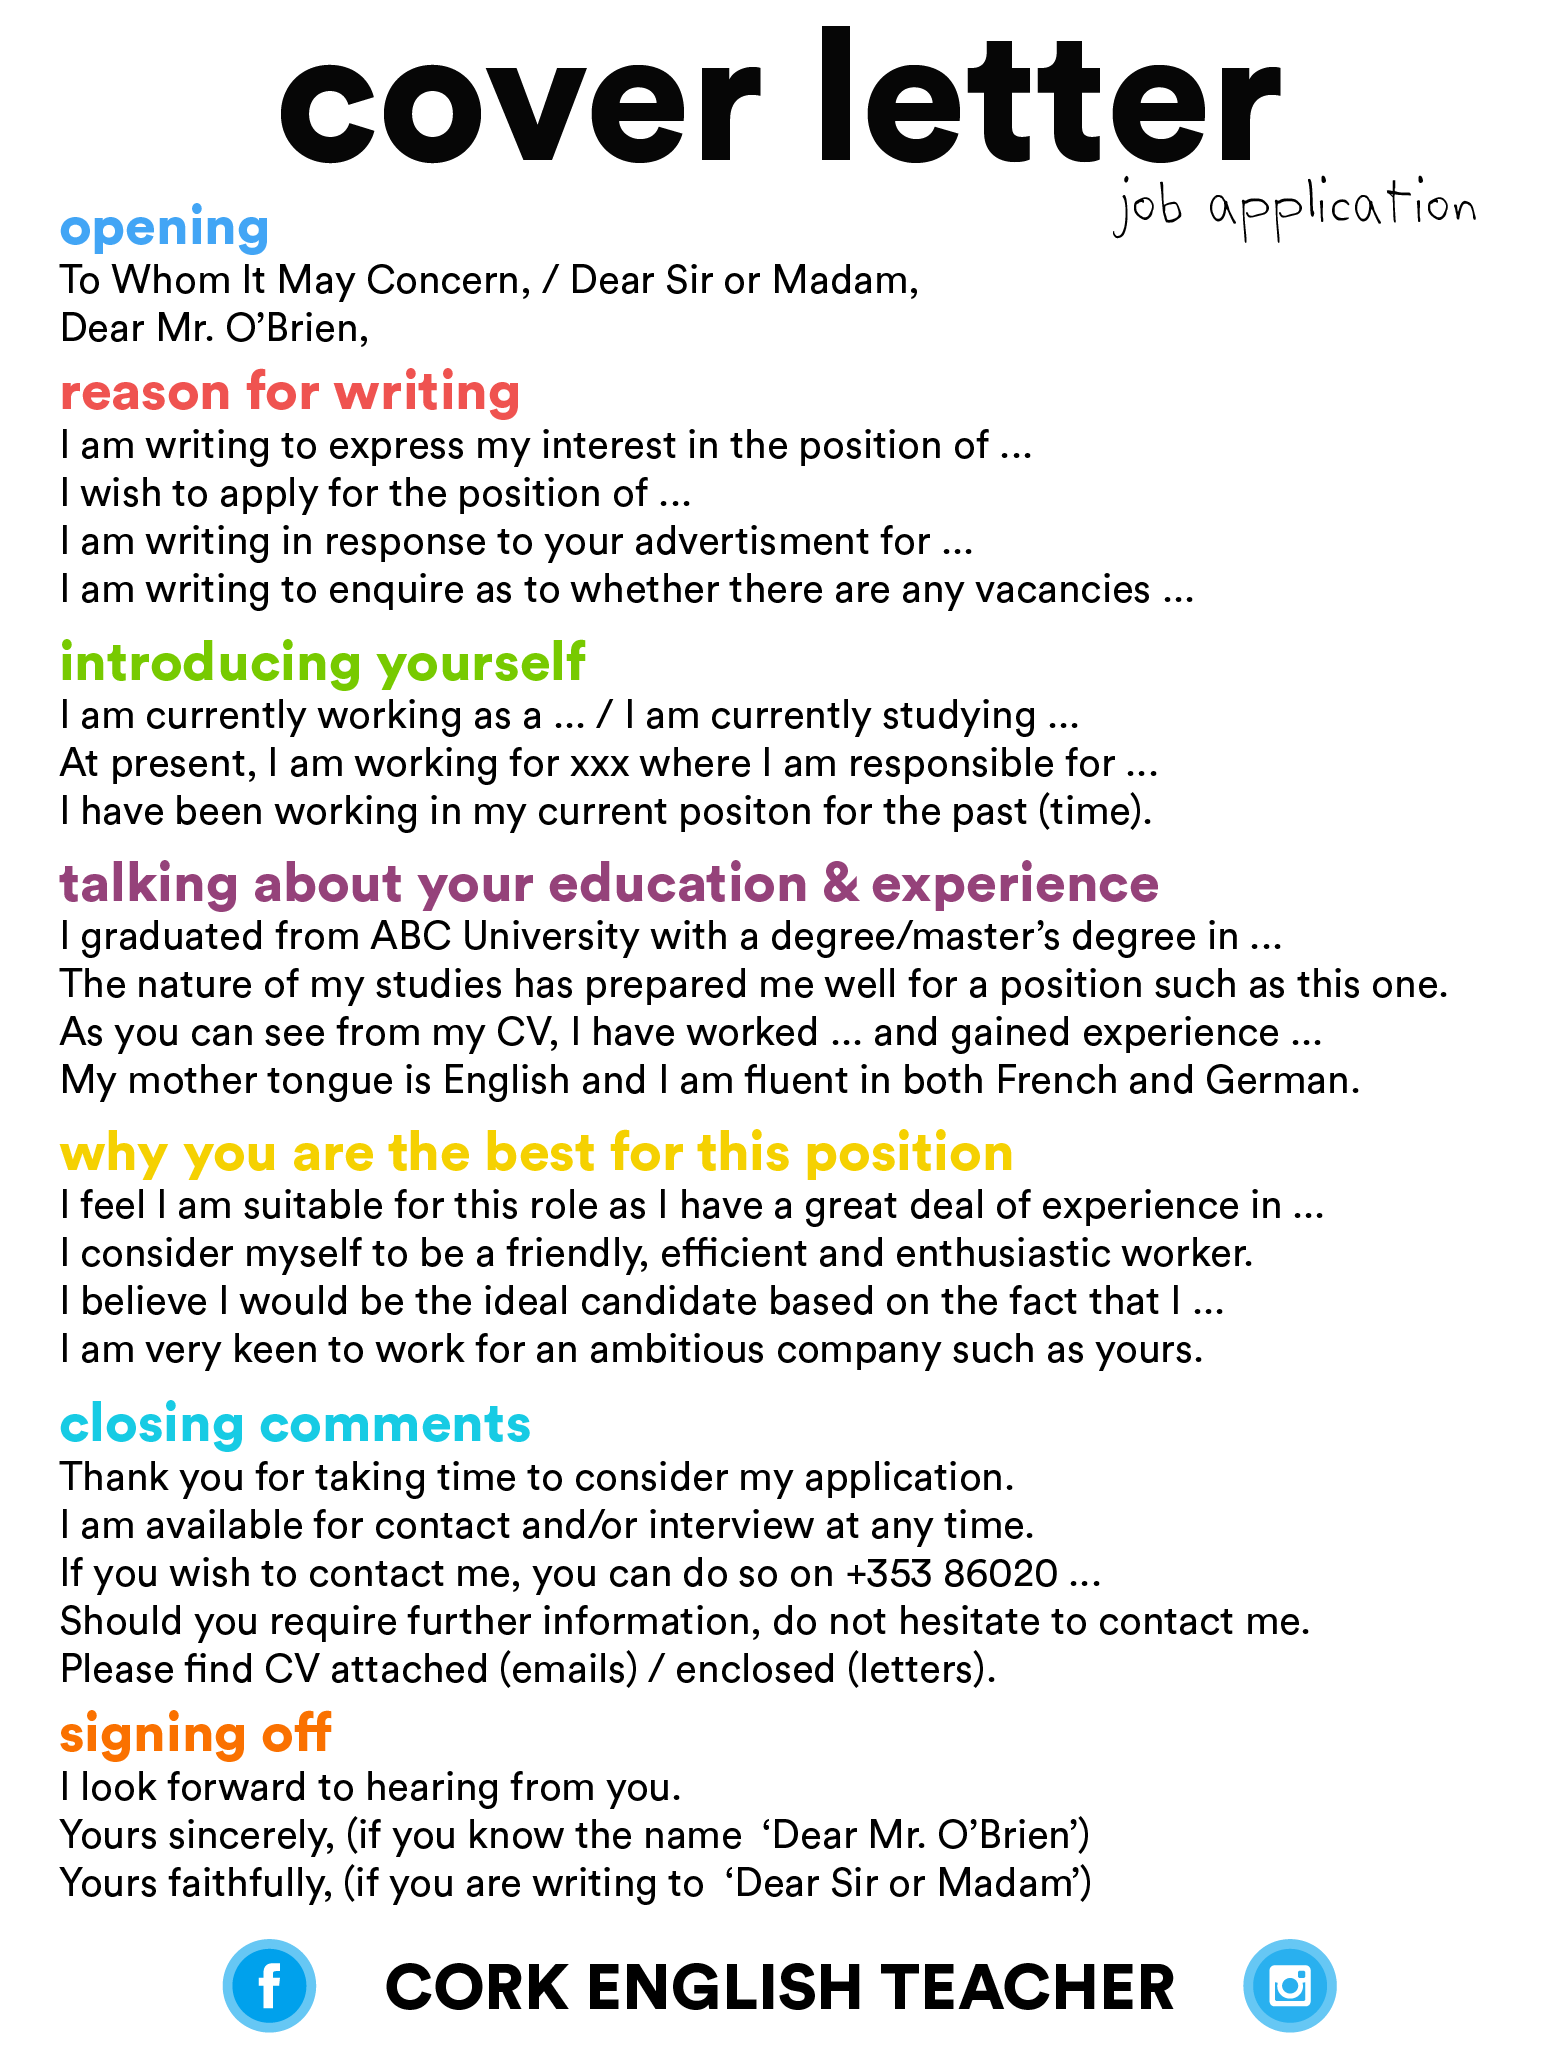 cover letter - job application | Resume | Pinterest | College ...